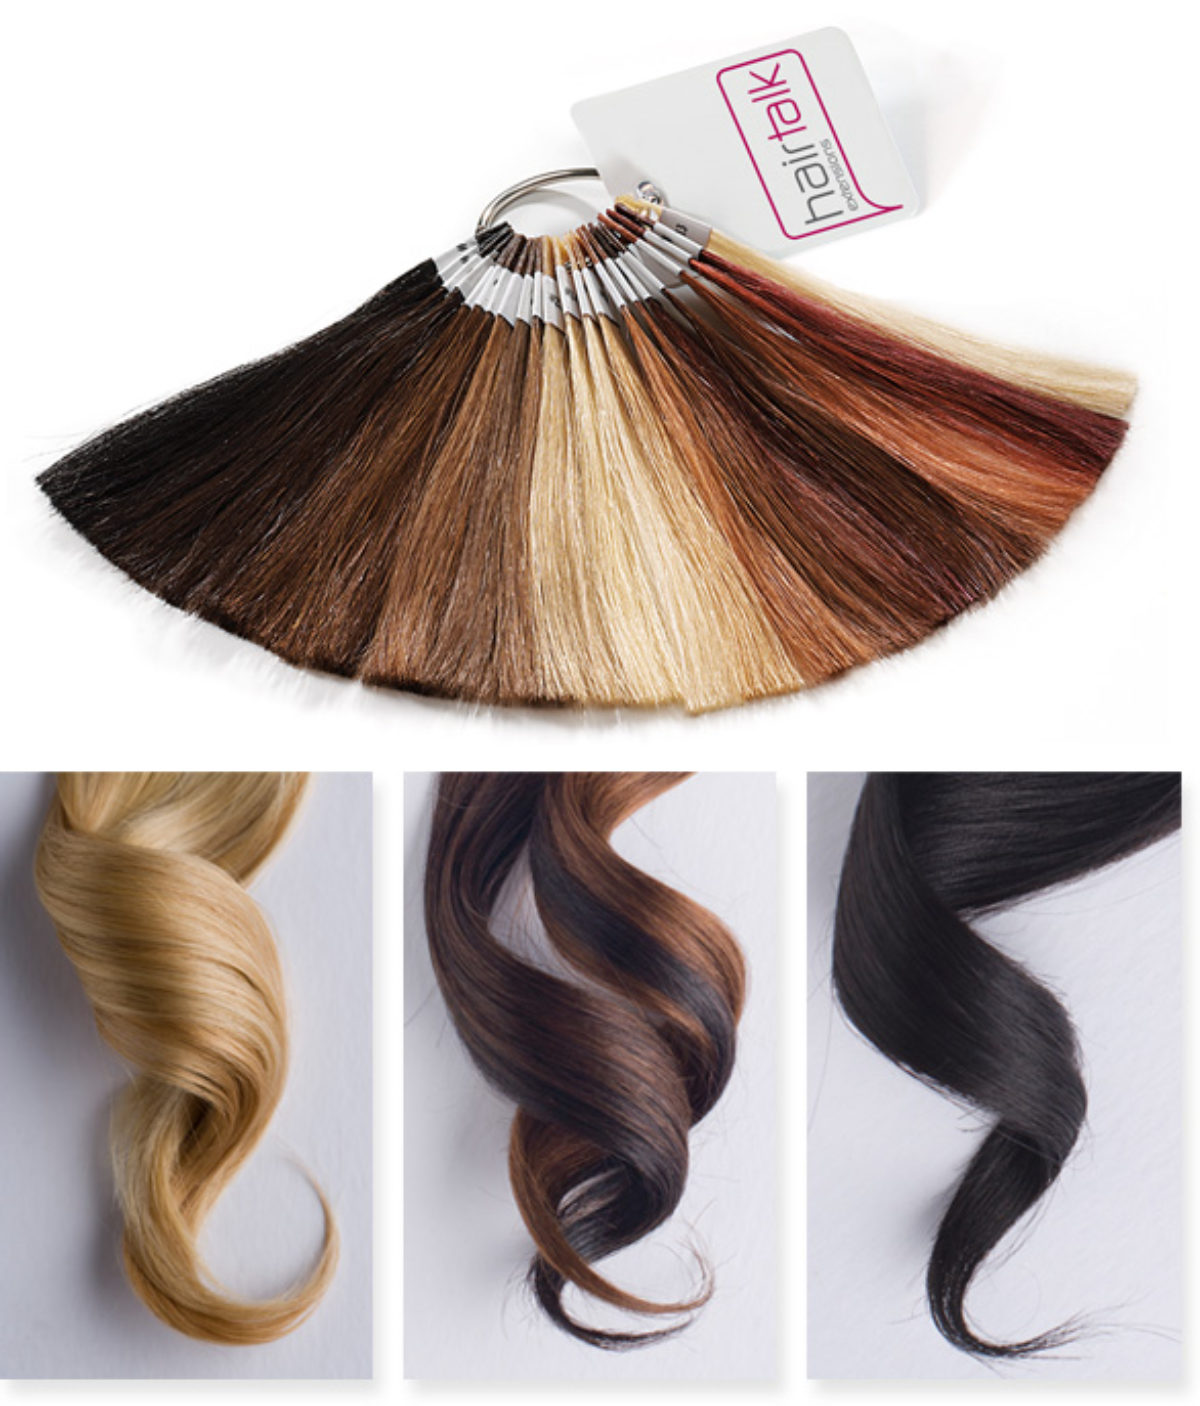 Tape Extensions Your Ticket To Kardashian Worthy Hair